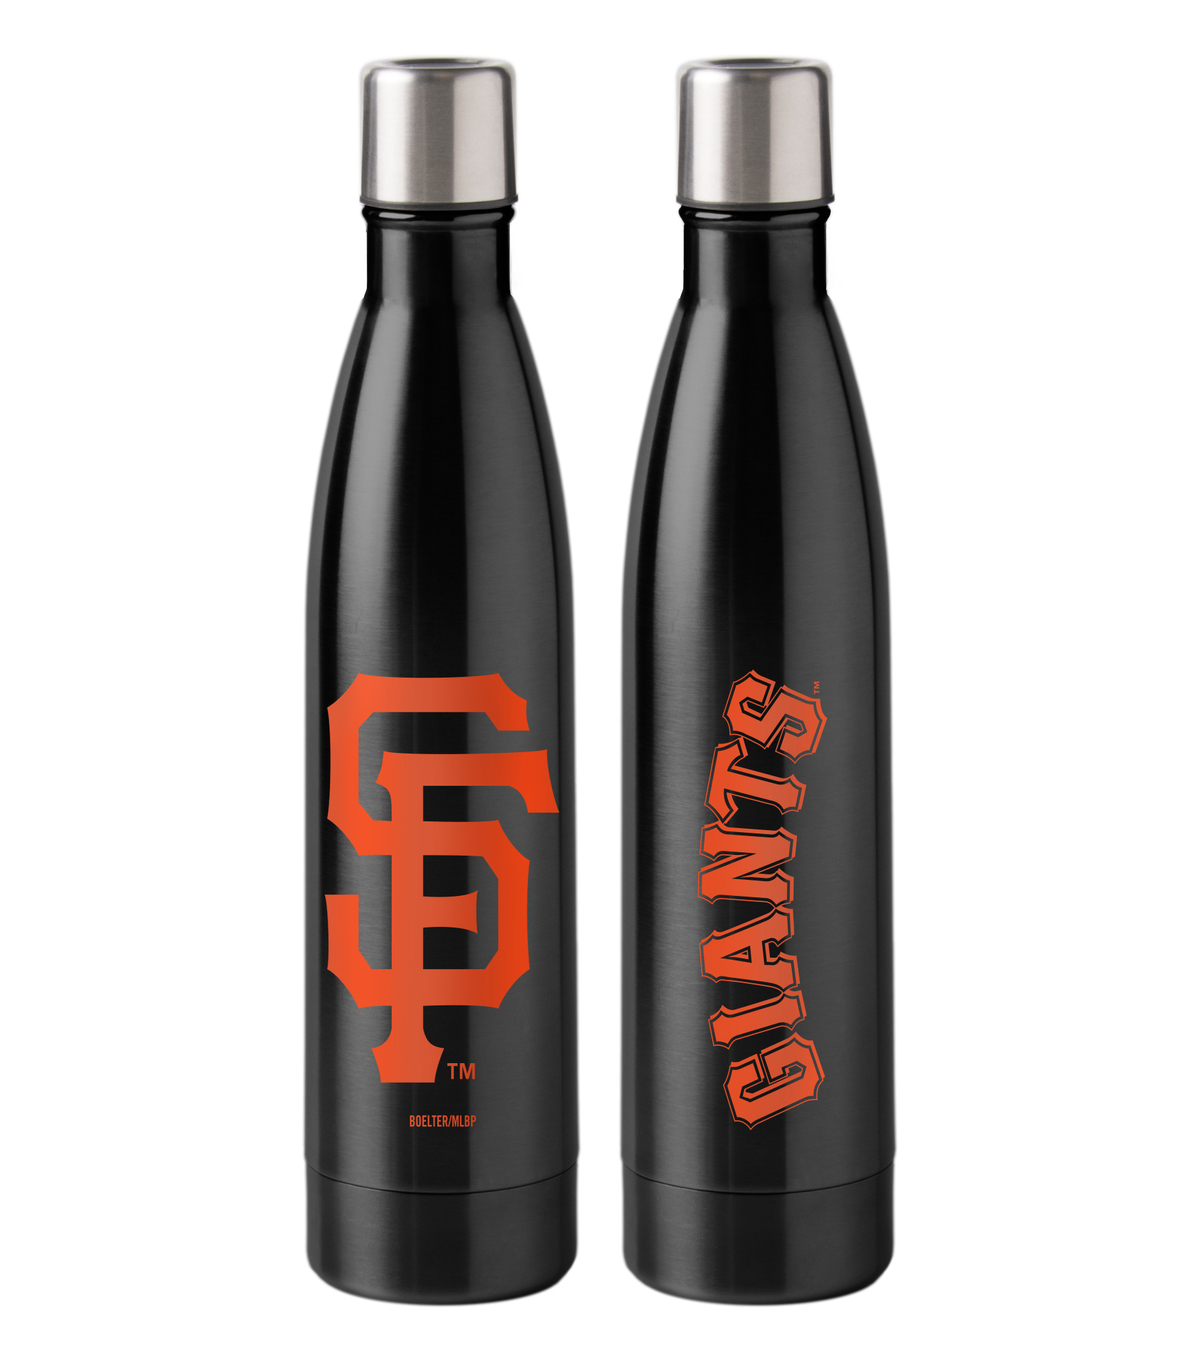 San Francisco Giants 18 oz Insulated Stainless Steel Water Bottle